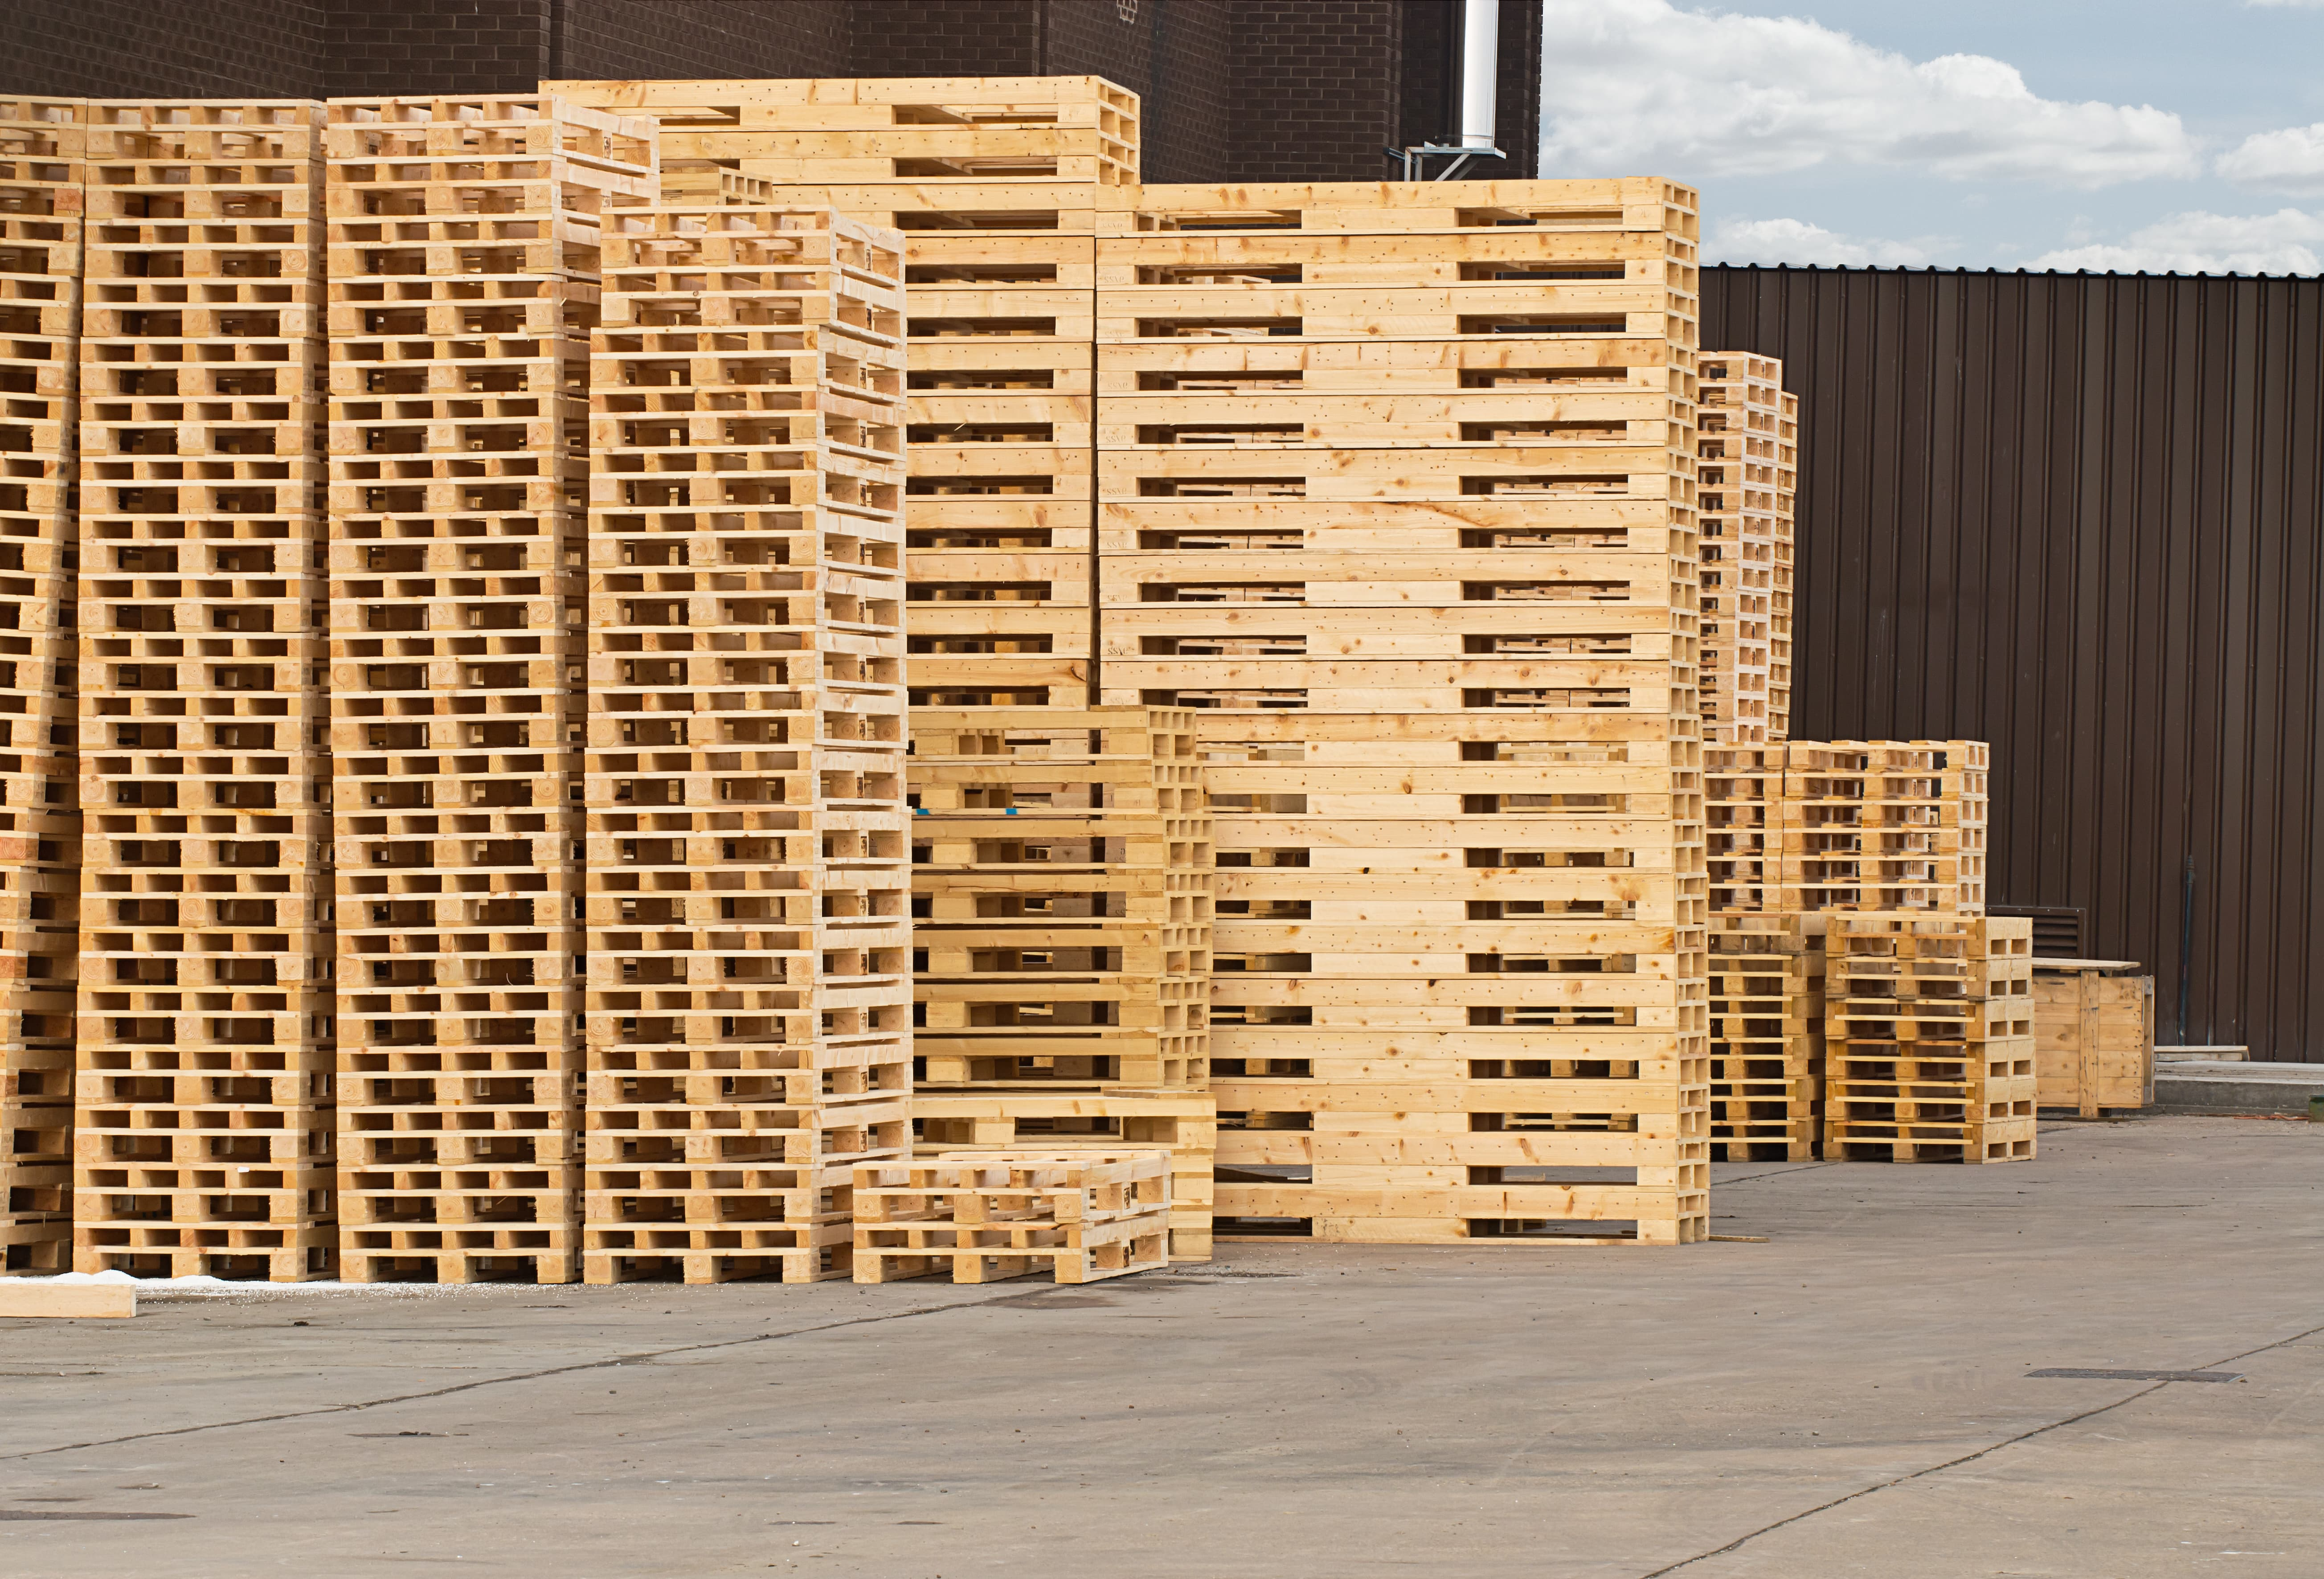 Production of pallets